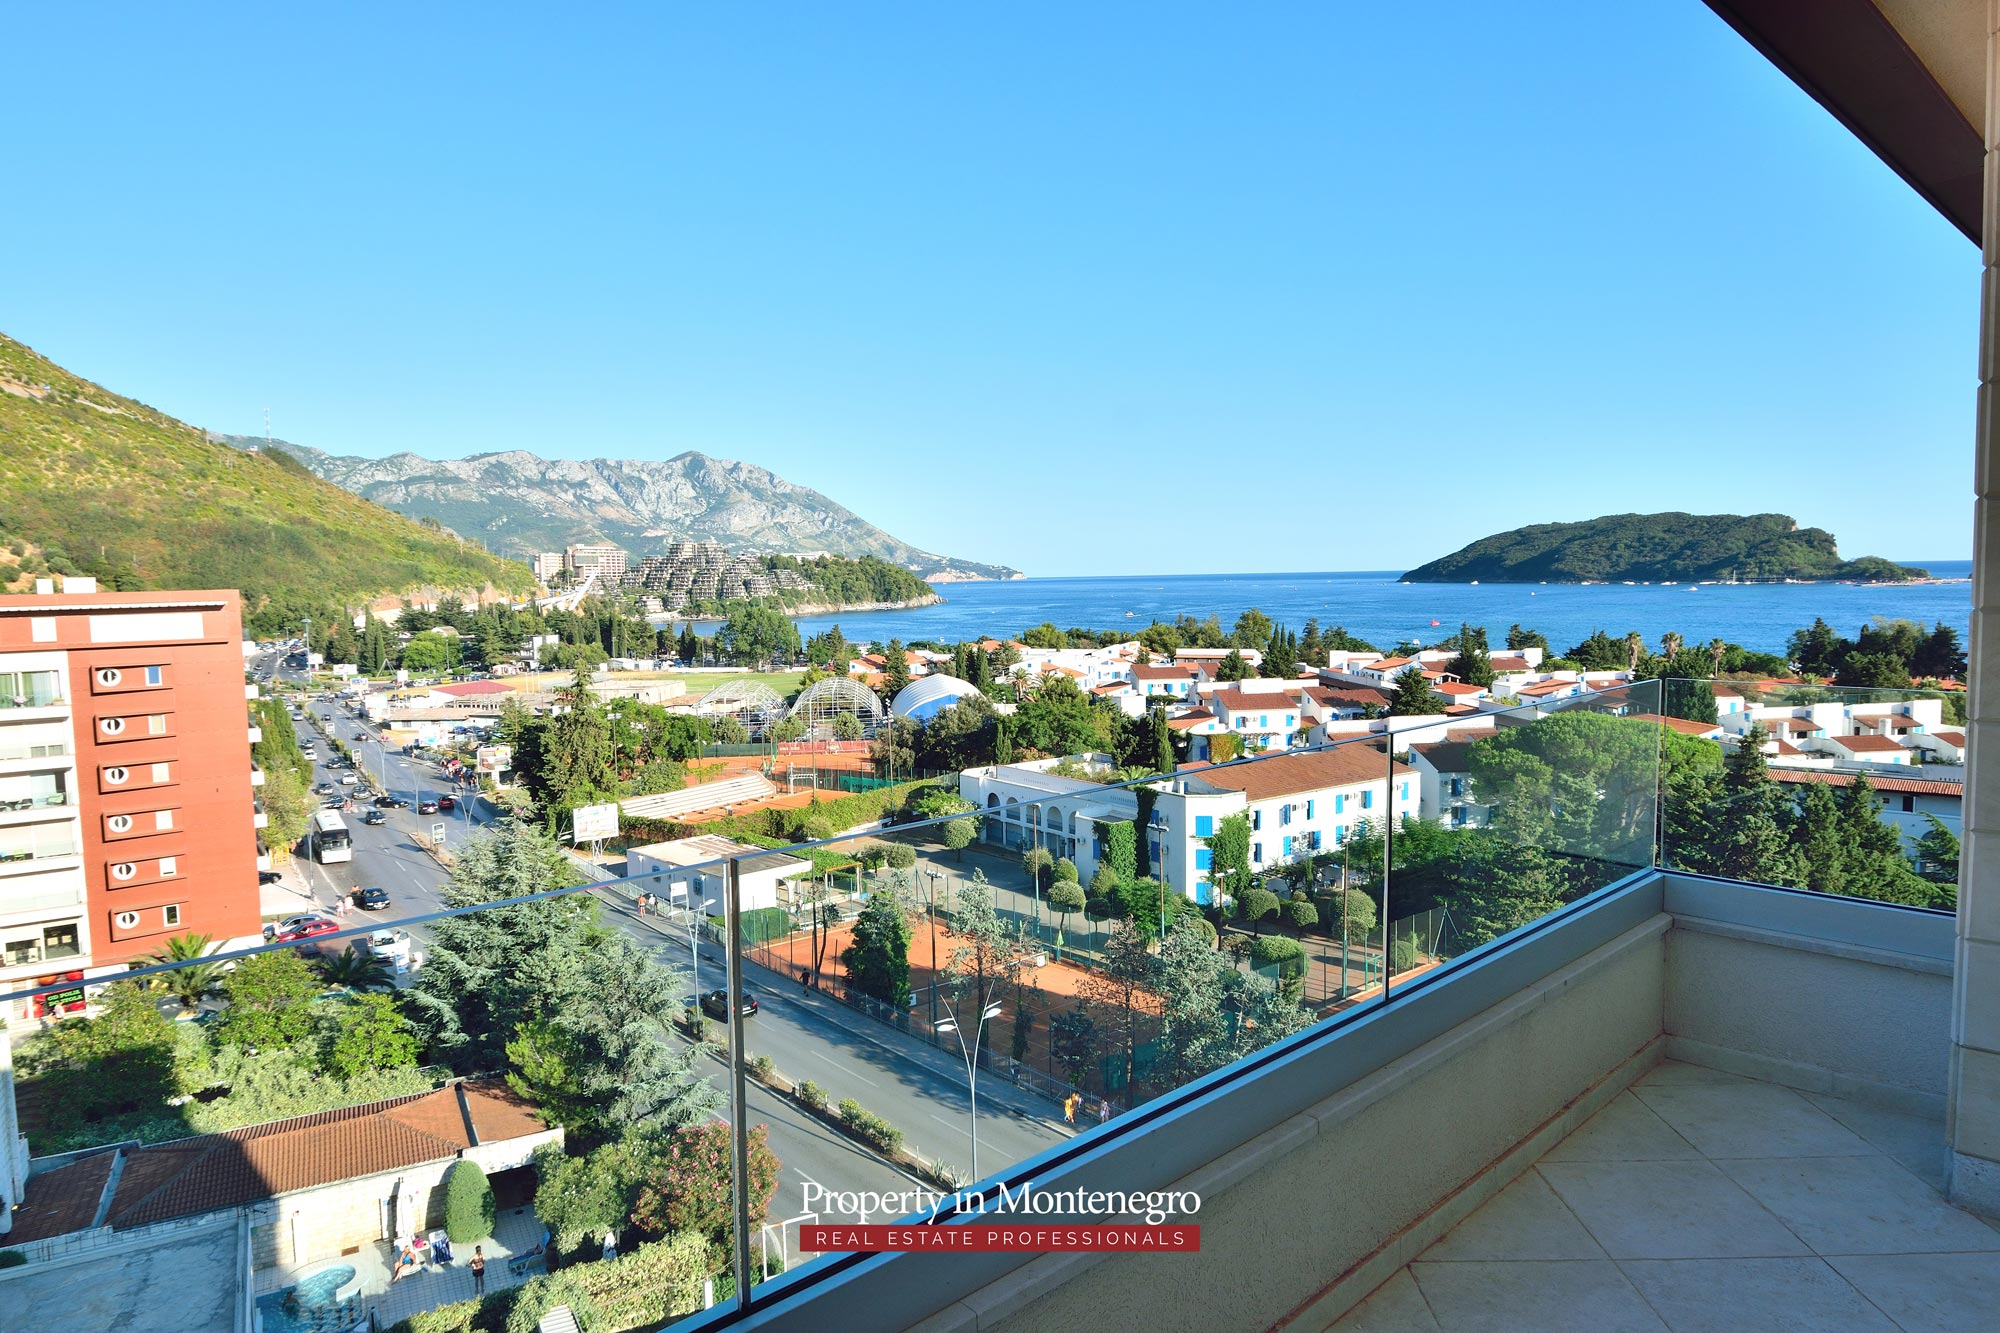 luxury-penthouse-with-panoramic-view-and-swimming-pool-for-sale-in-Budva-Montenegro (19).jpg